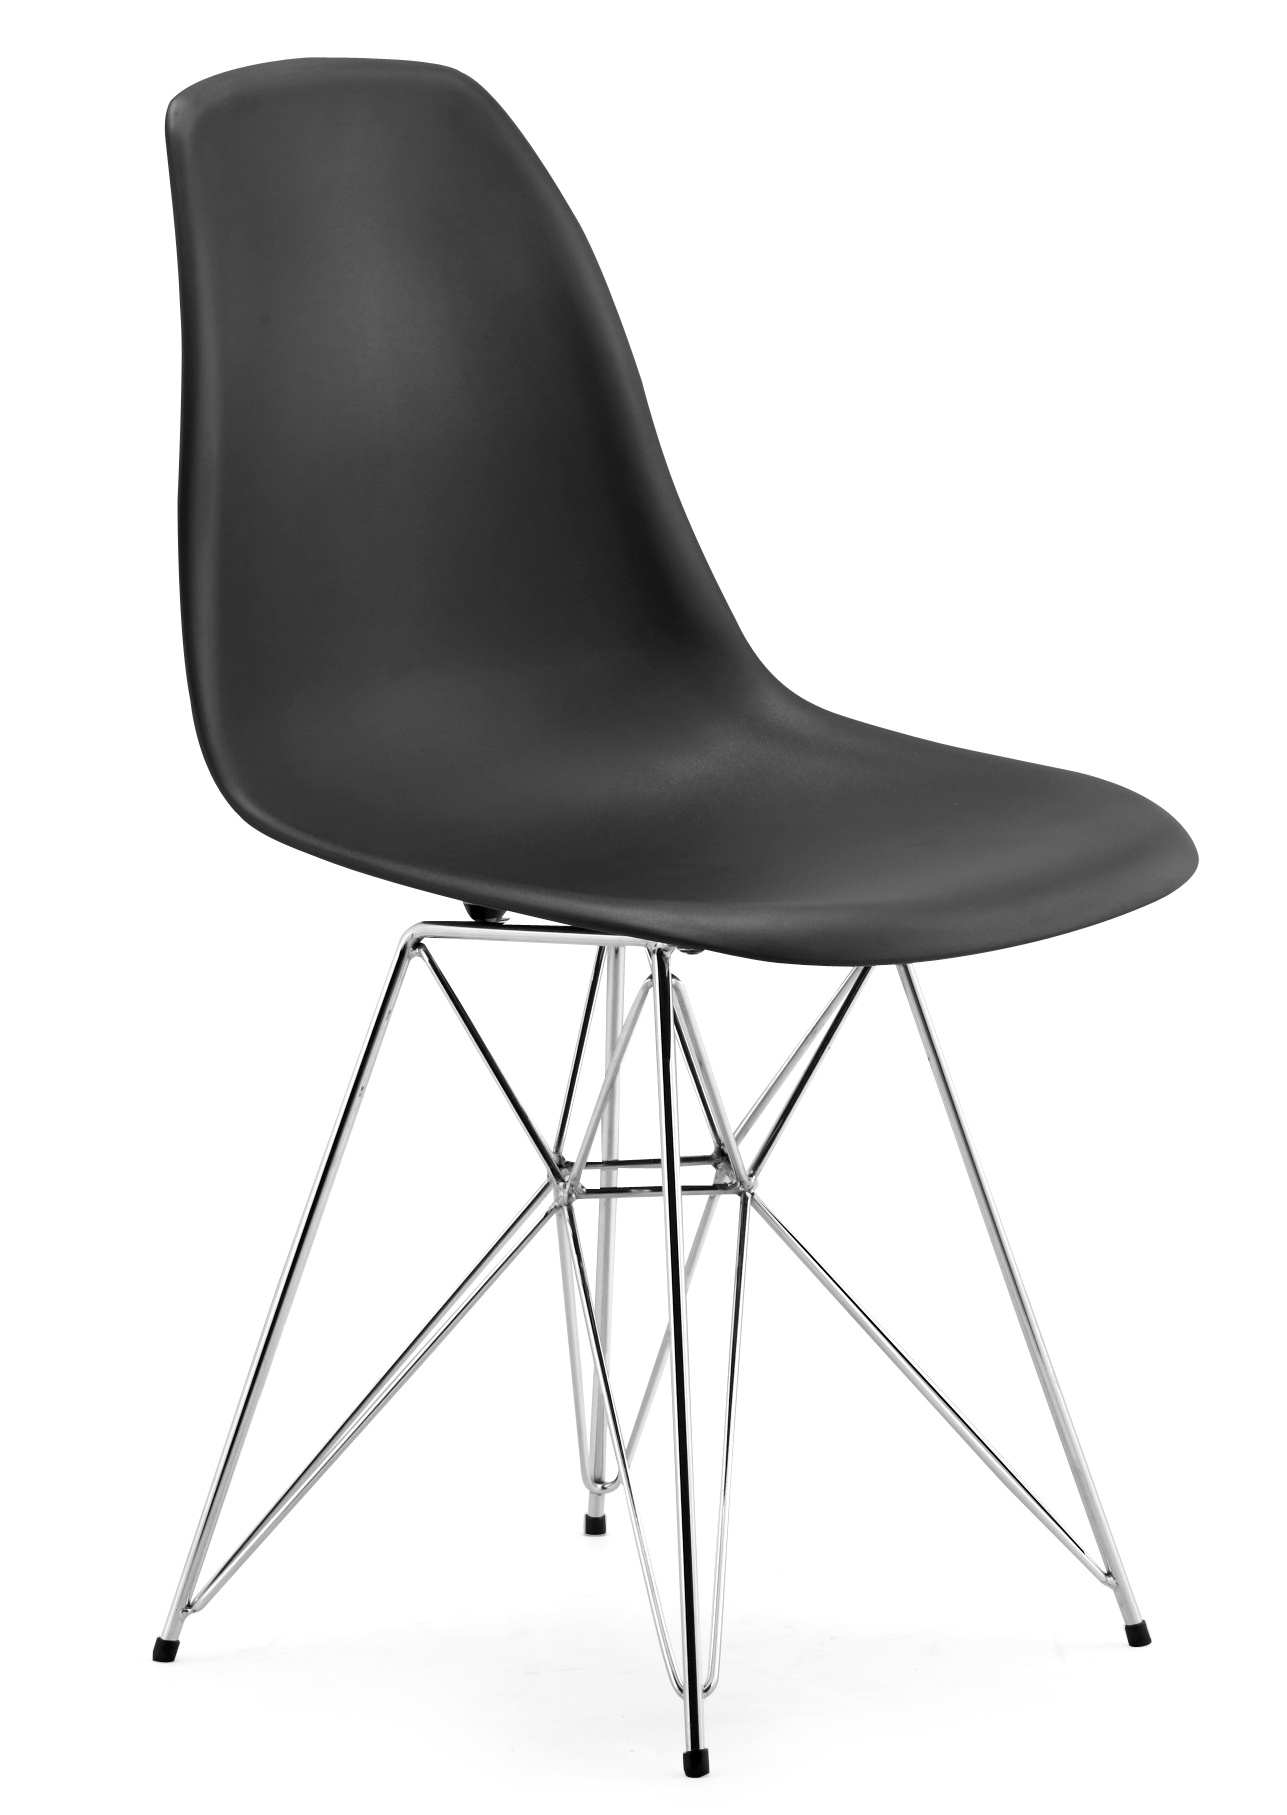 black kitchen chairs kitchen chair zuo modern spire dining chair dining chair 0 0